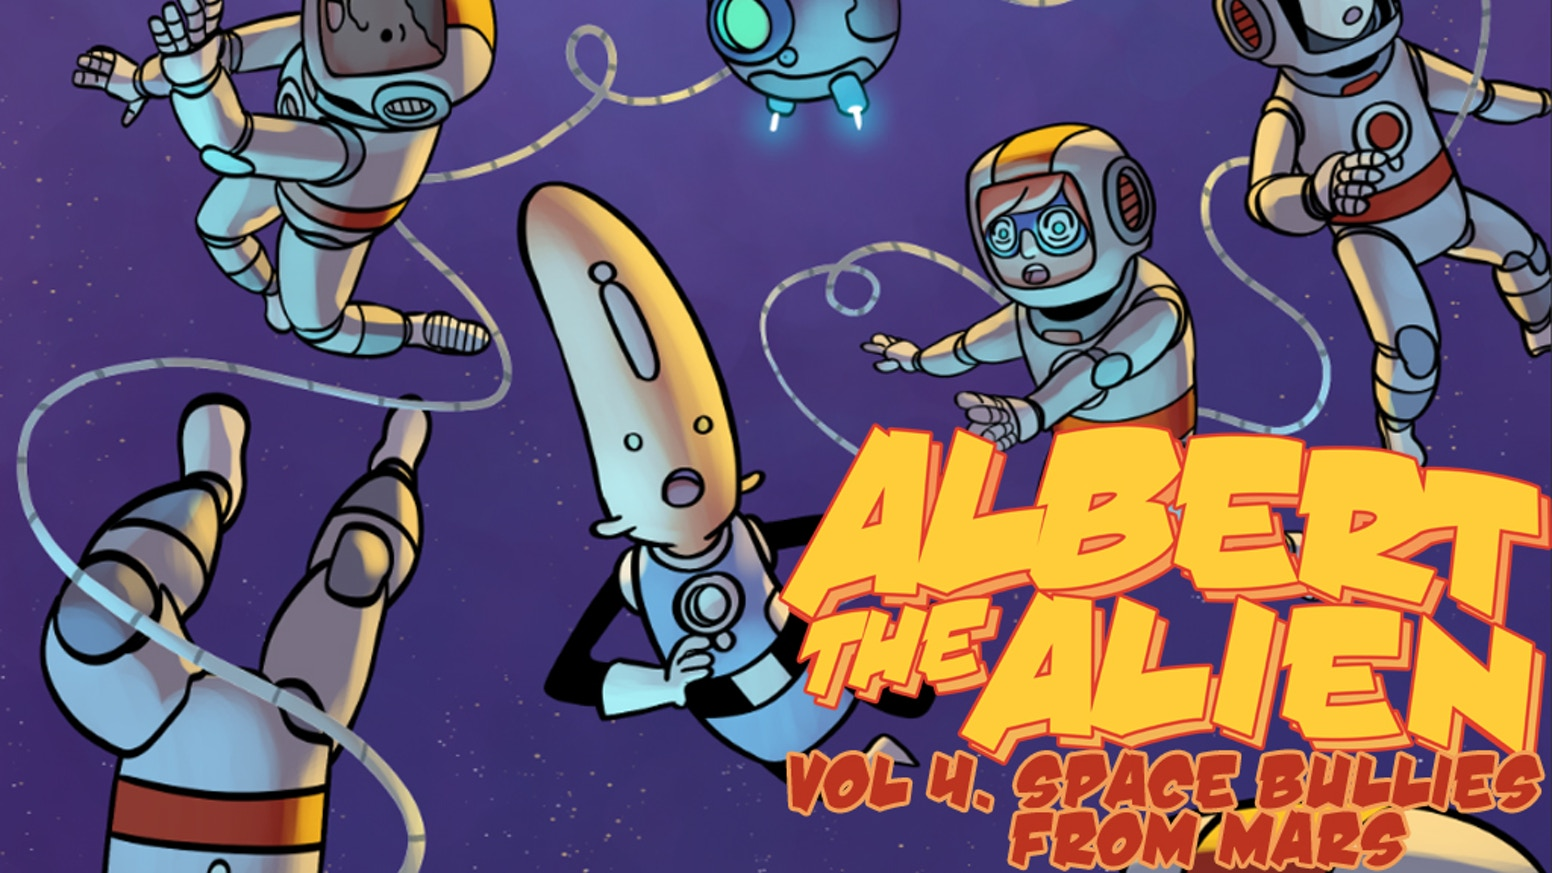 The final volume of Albert the Alien! The epic adventure of the first foreign exchange student from another planet ends here!